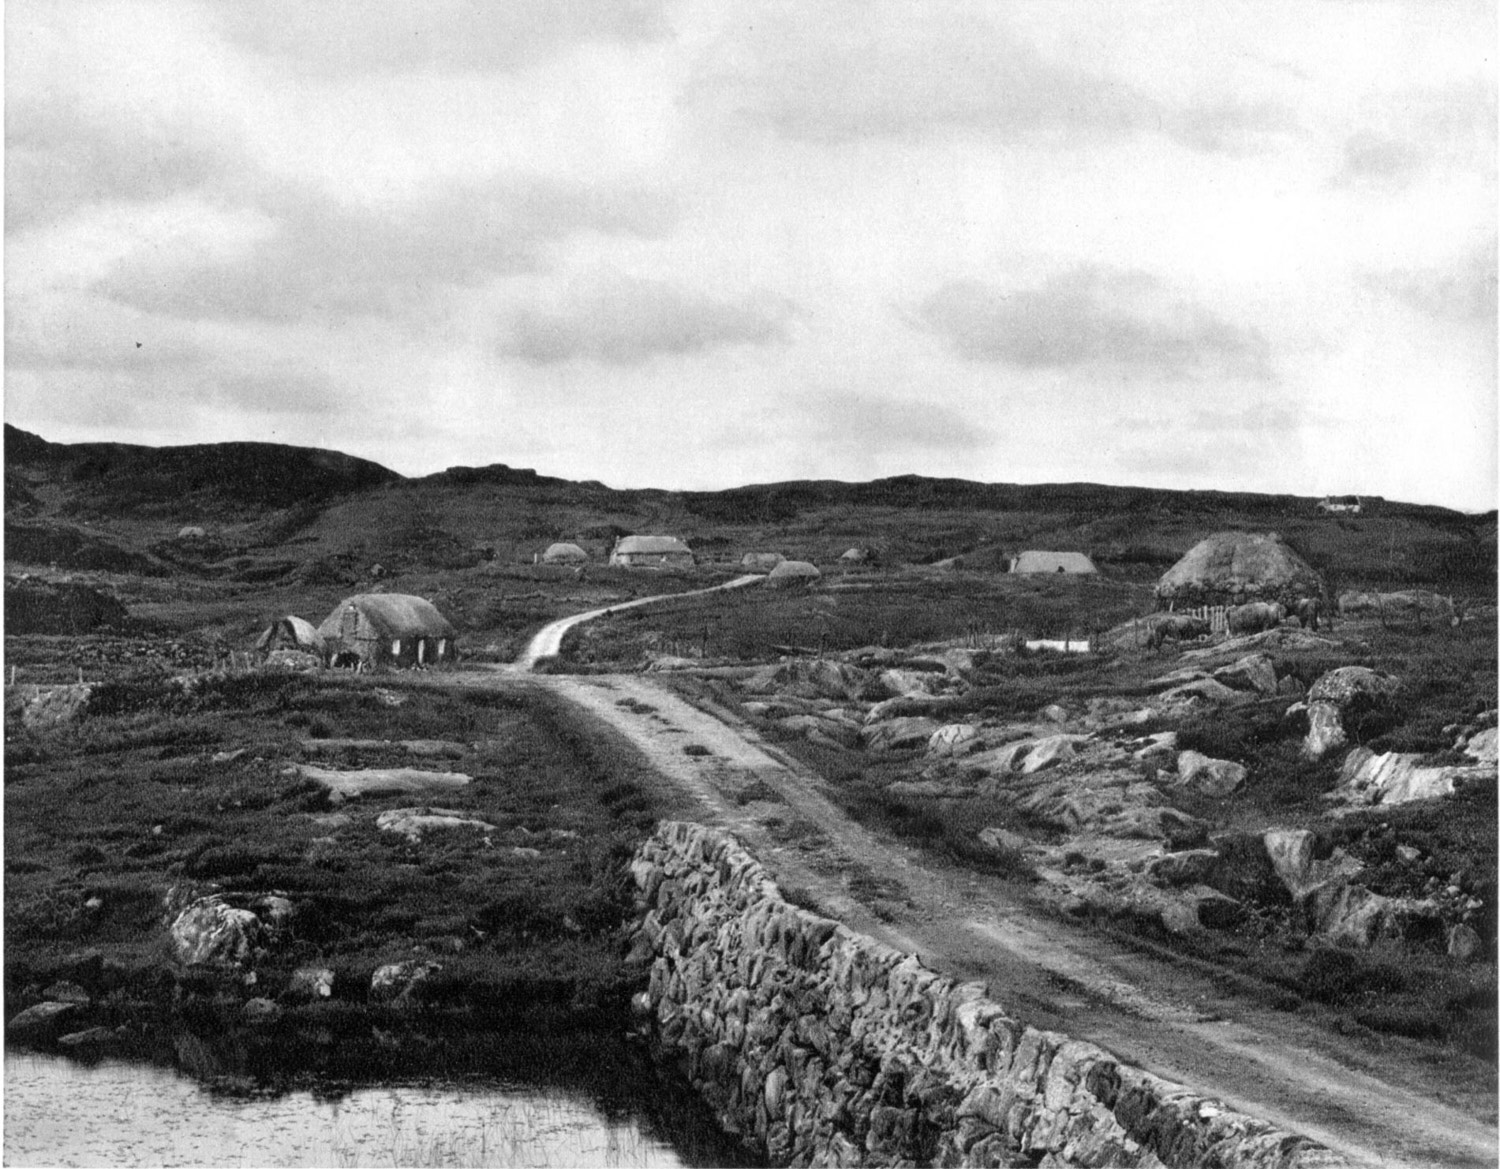 The road, South Lochboisdale, Paul Strand, Tir a' Mhurain 1962